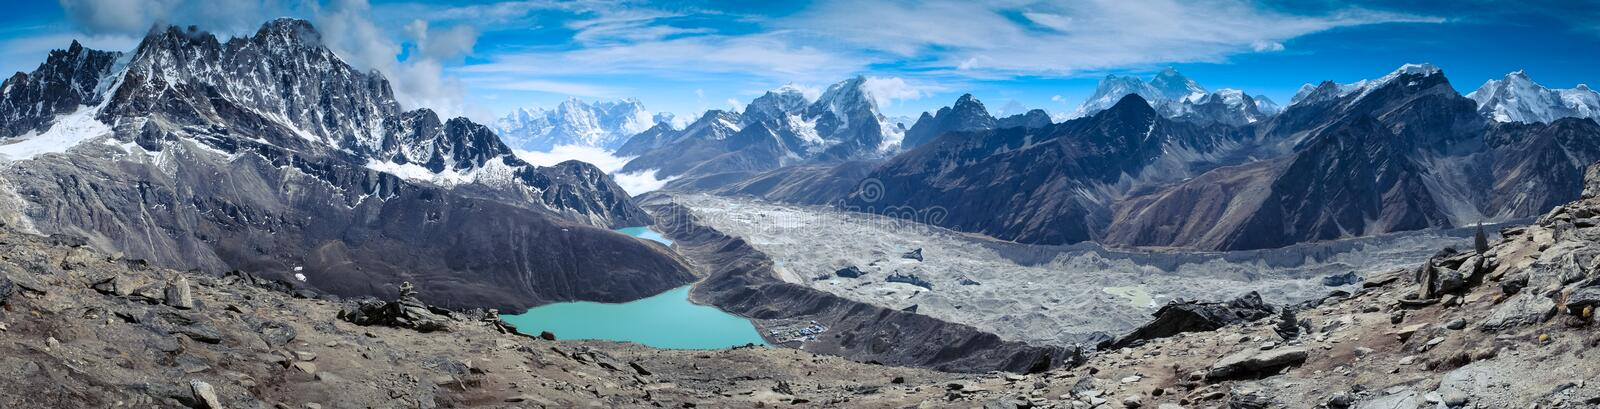 Beautiful snow-capped mountains with lake royalty free stock image